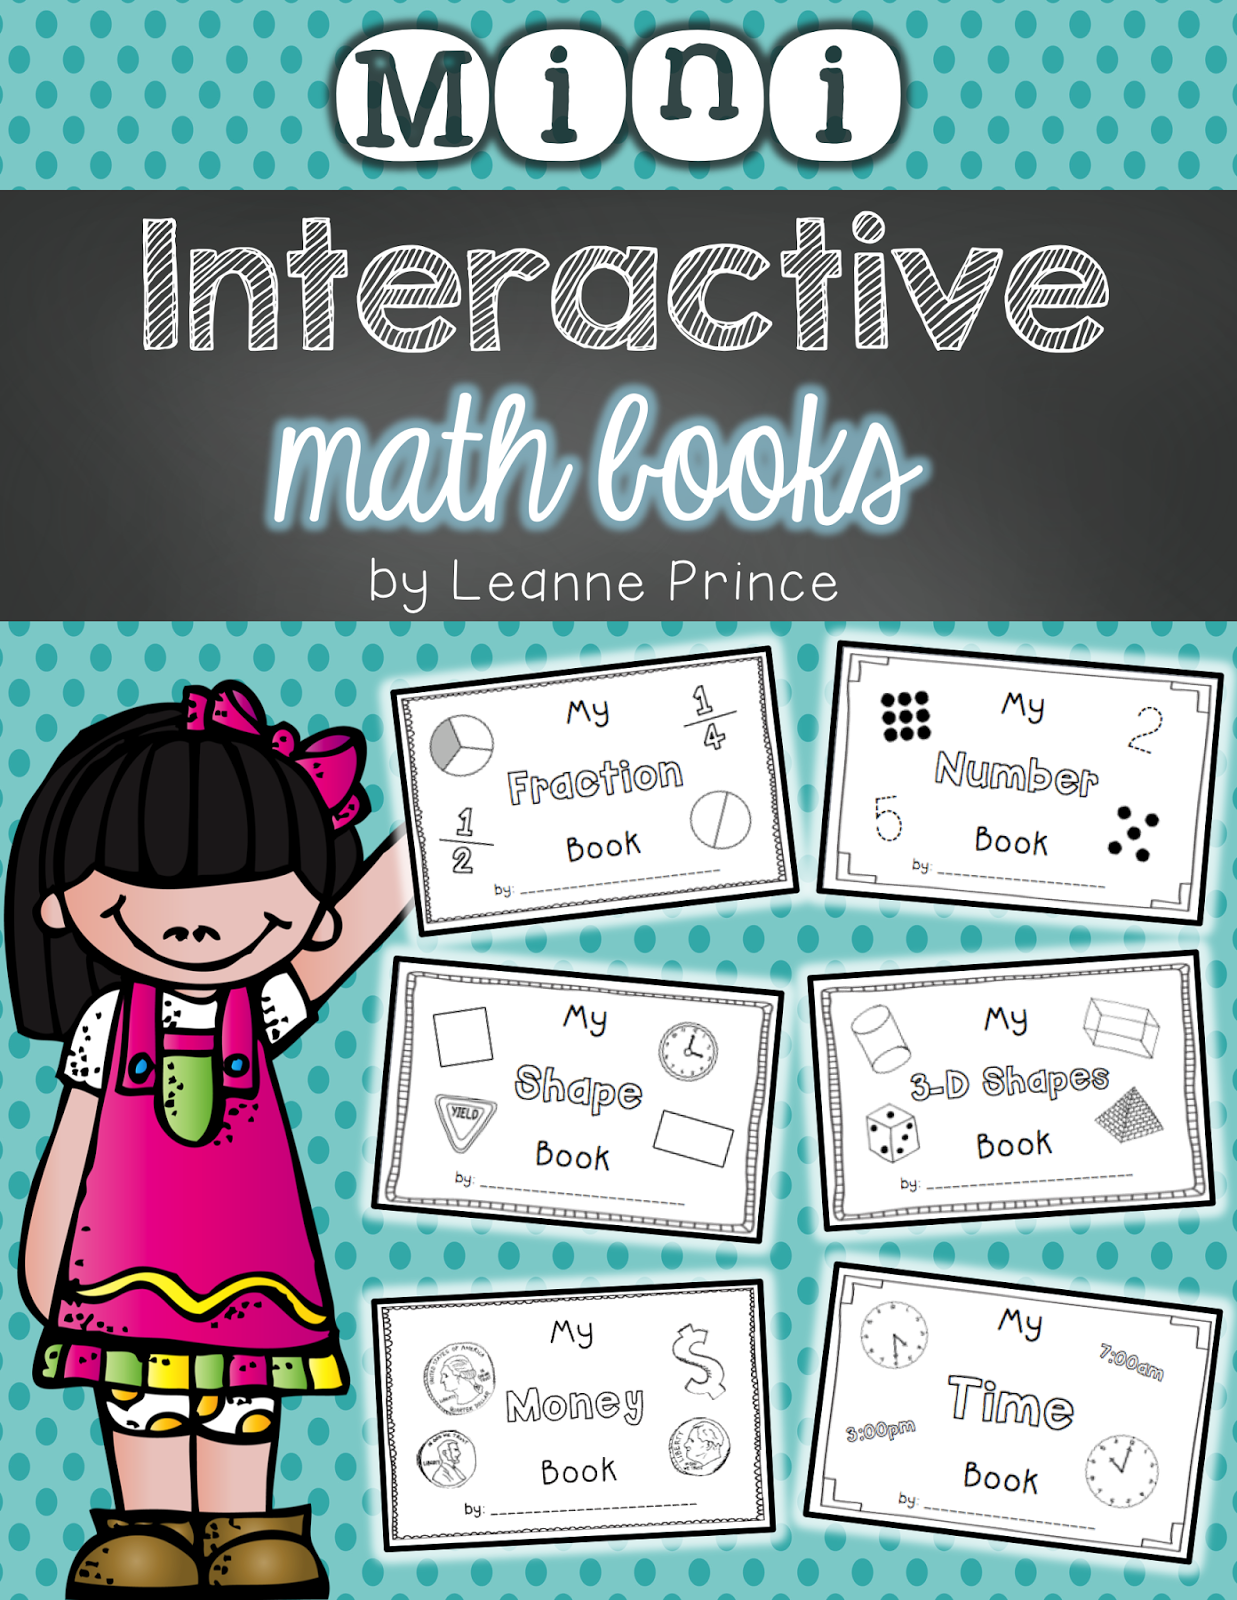 http://www.teacherspayteachers.com/Product/Mini-Interactive-Math-Books-1318793